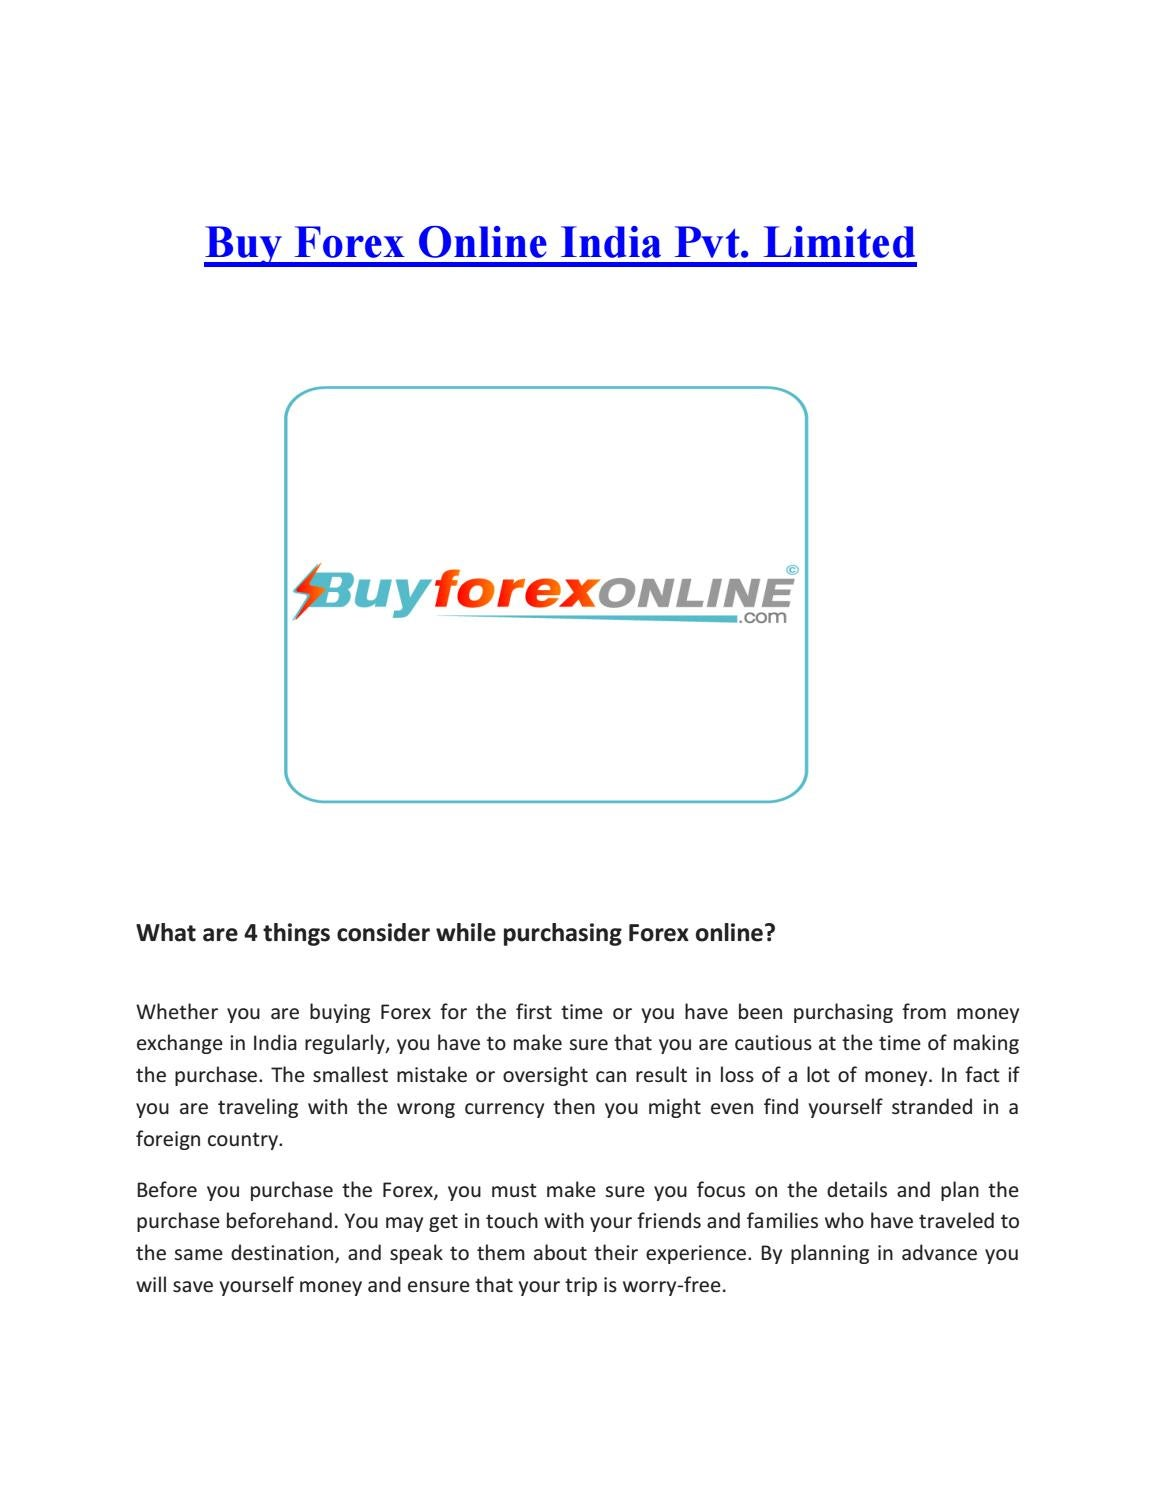 Get an advance in forex